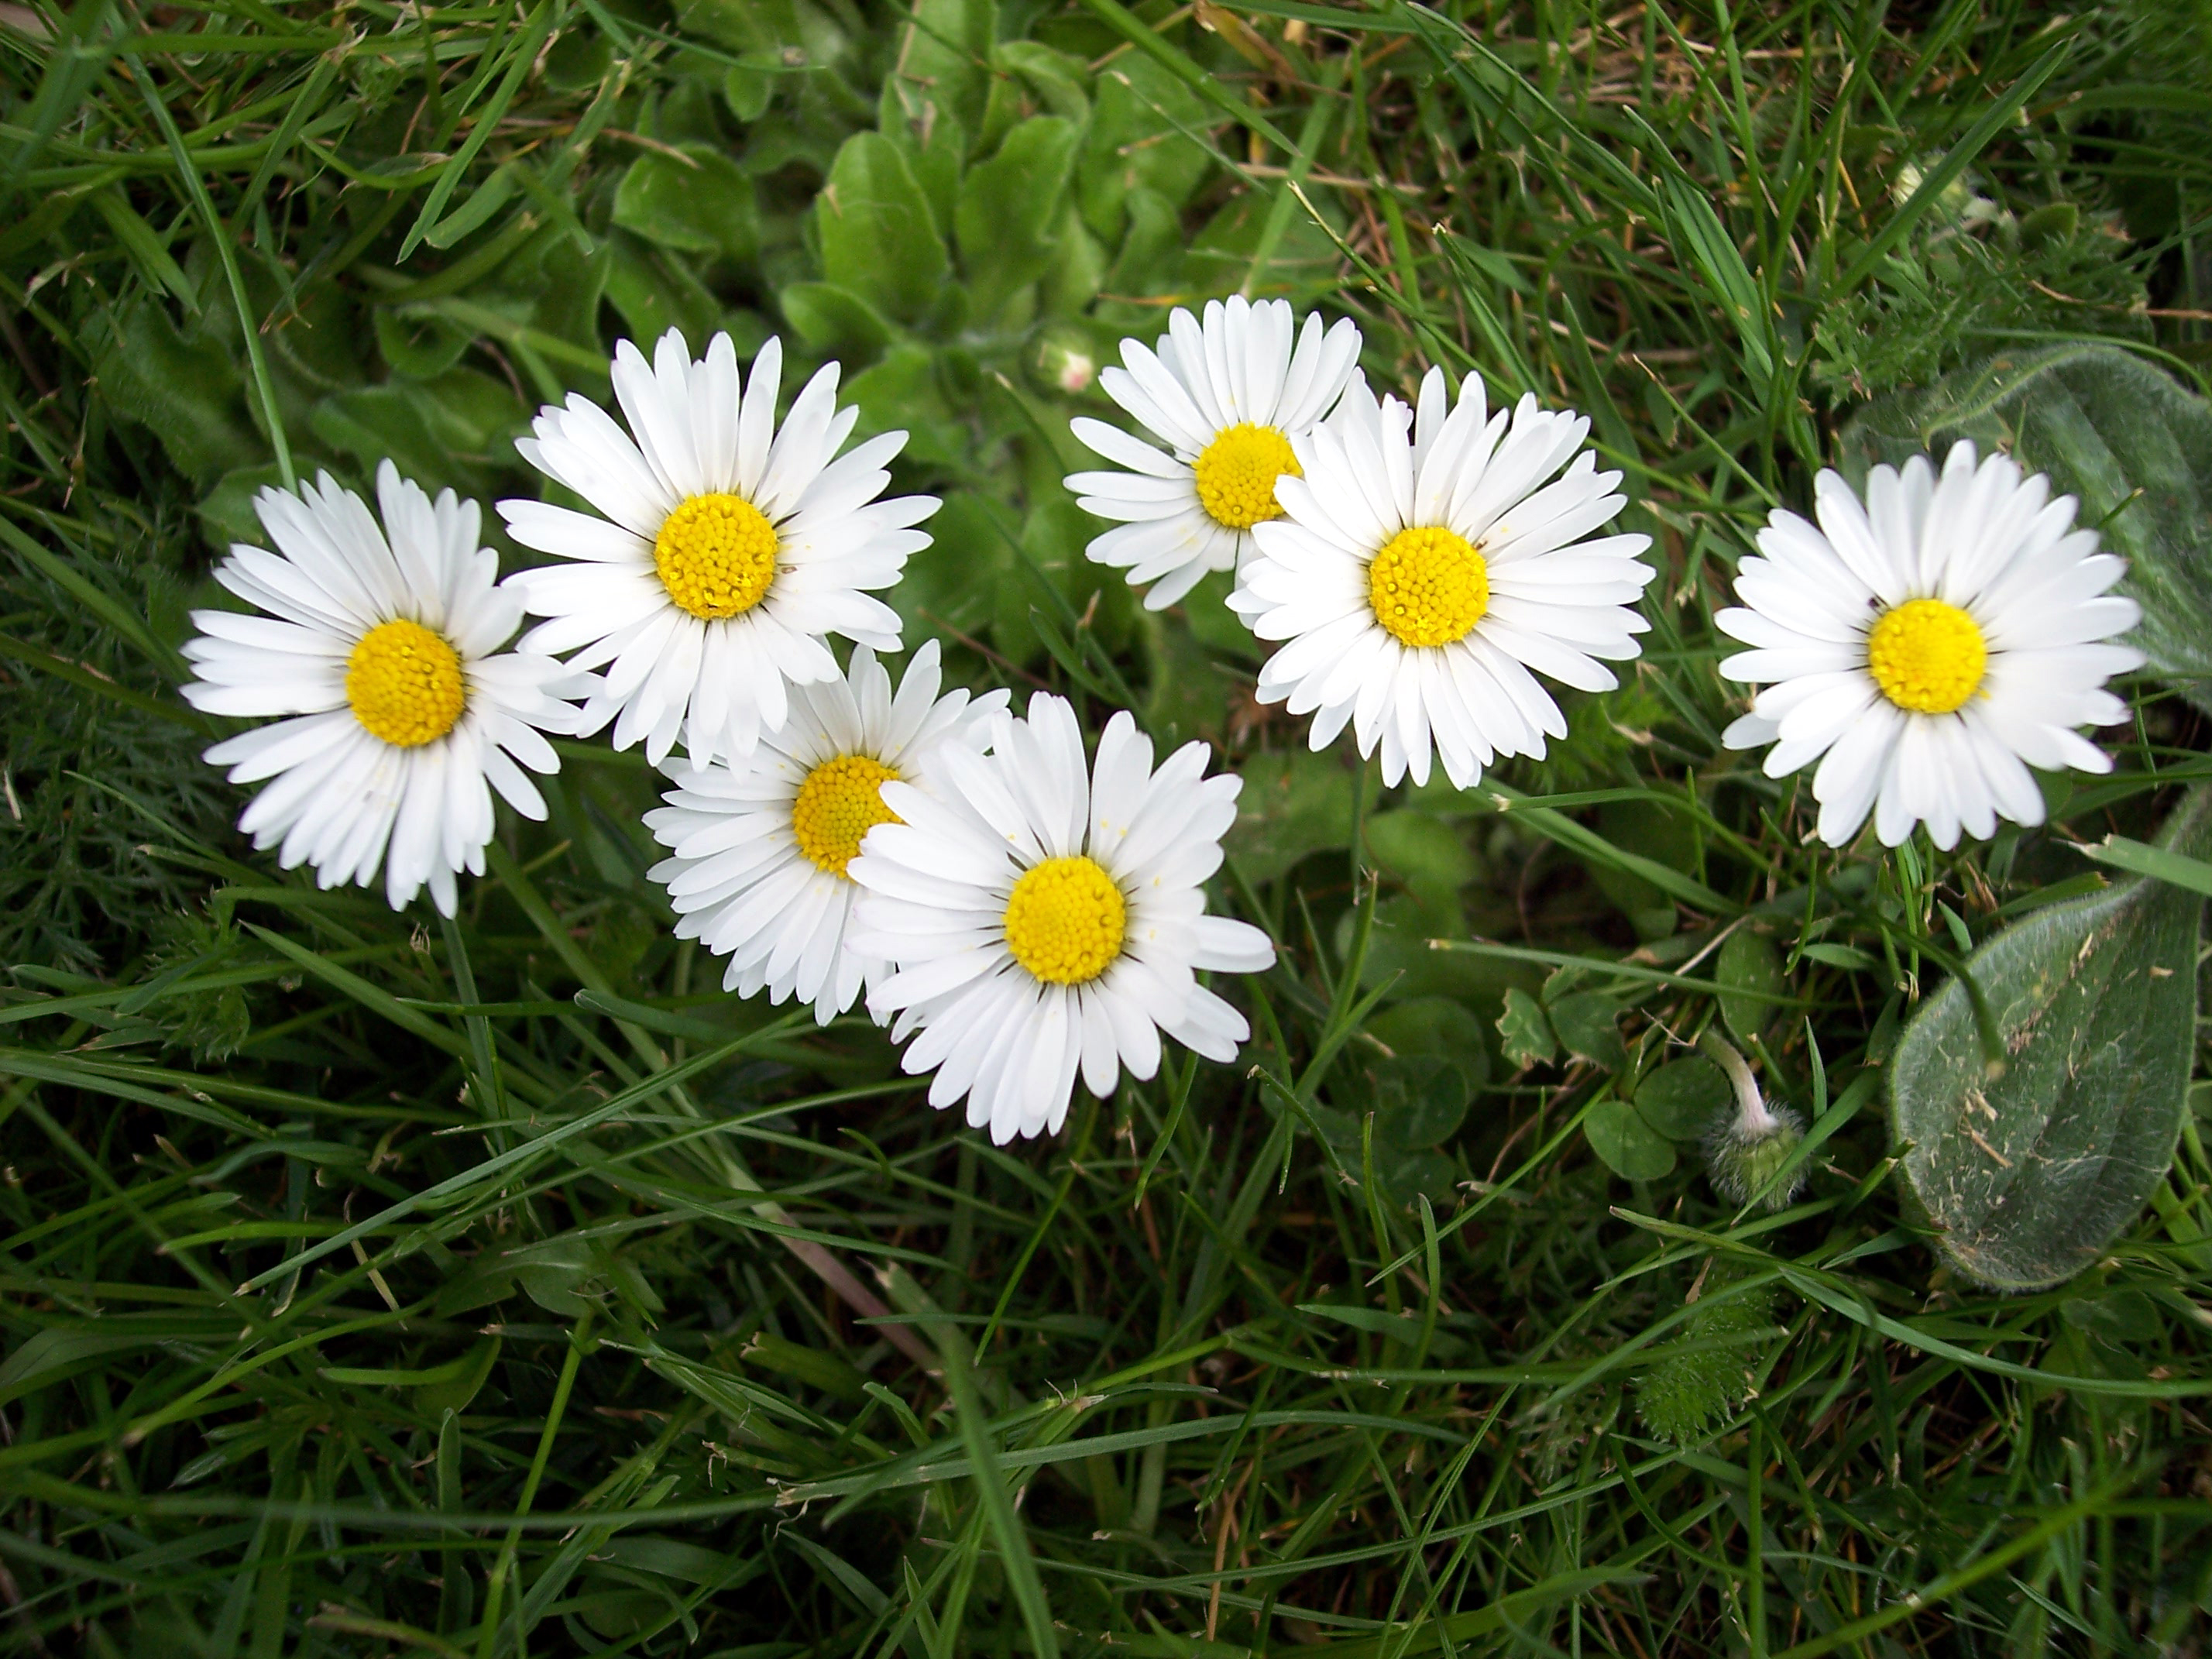 View image full size one of the most common flowers of short grassland the daisy has a yellow disc izmirmasajfo Gallery